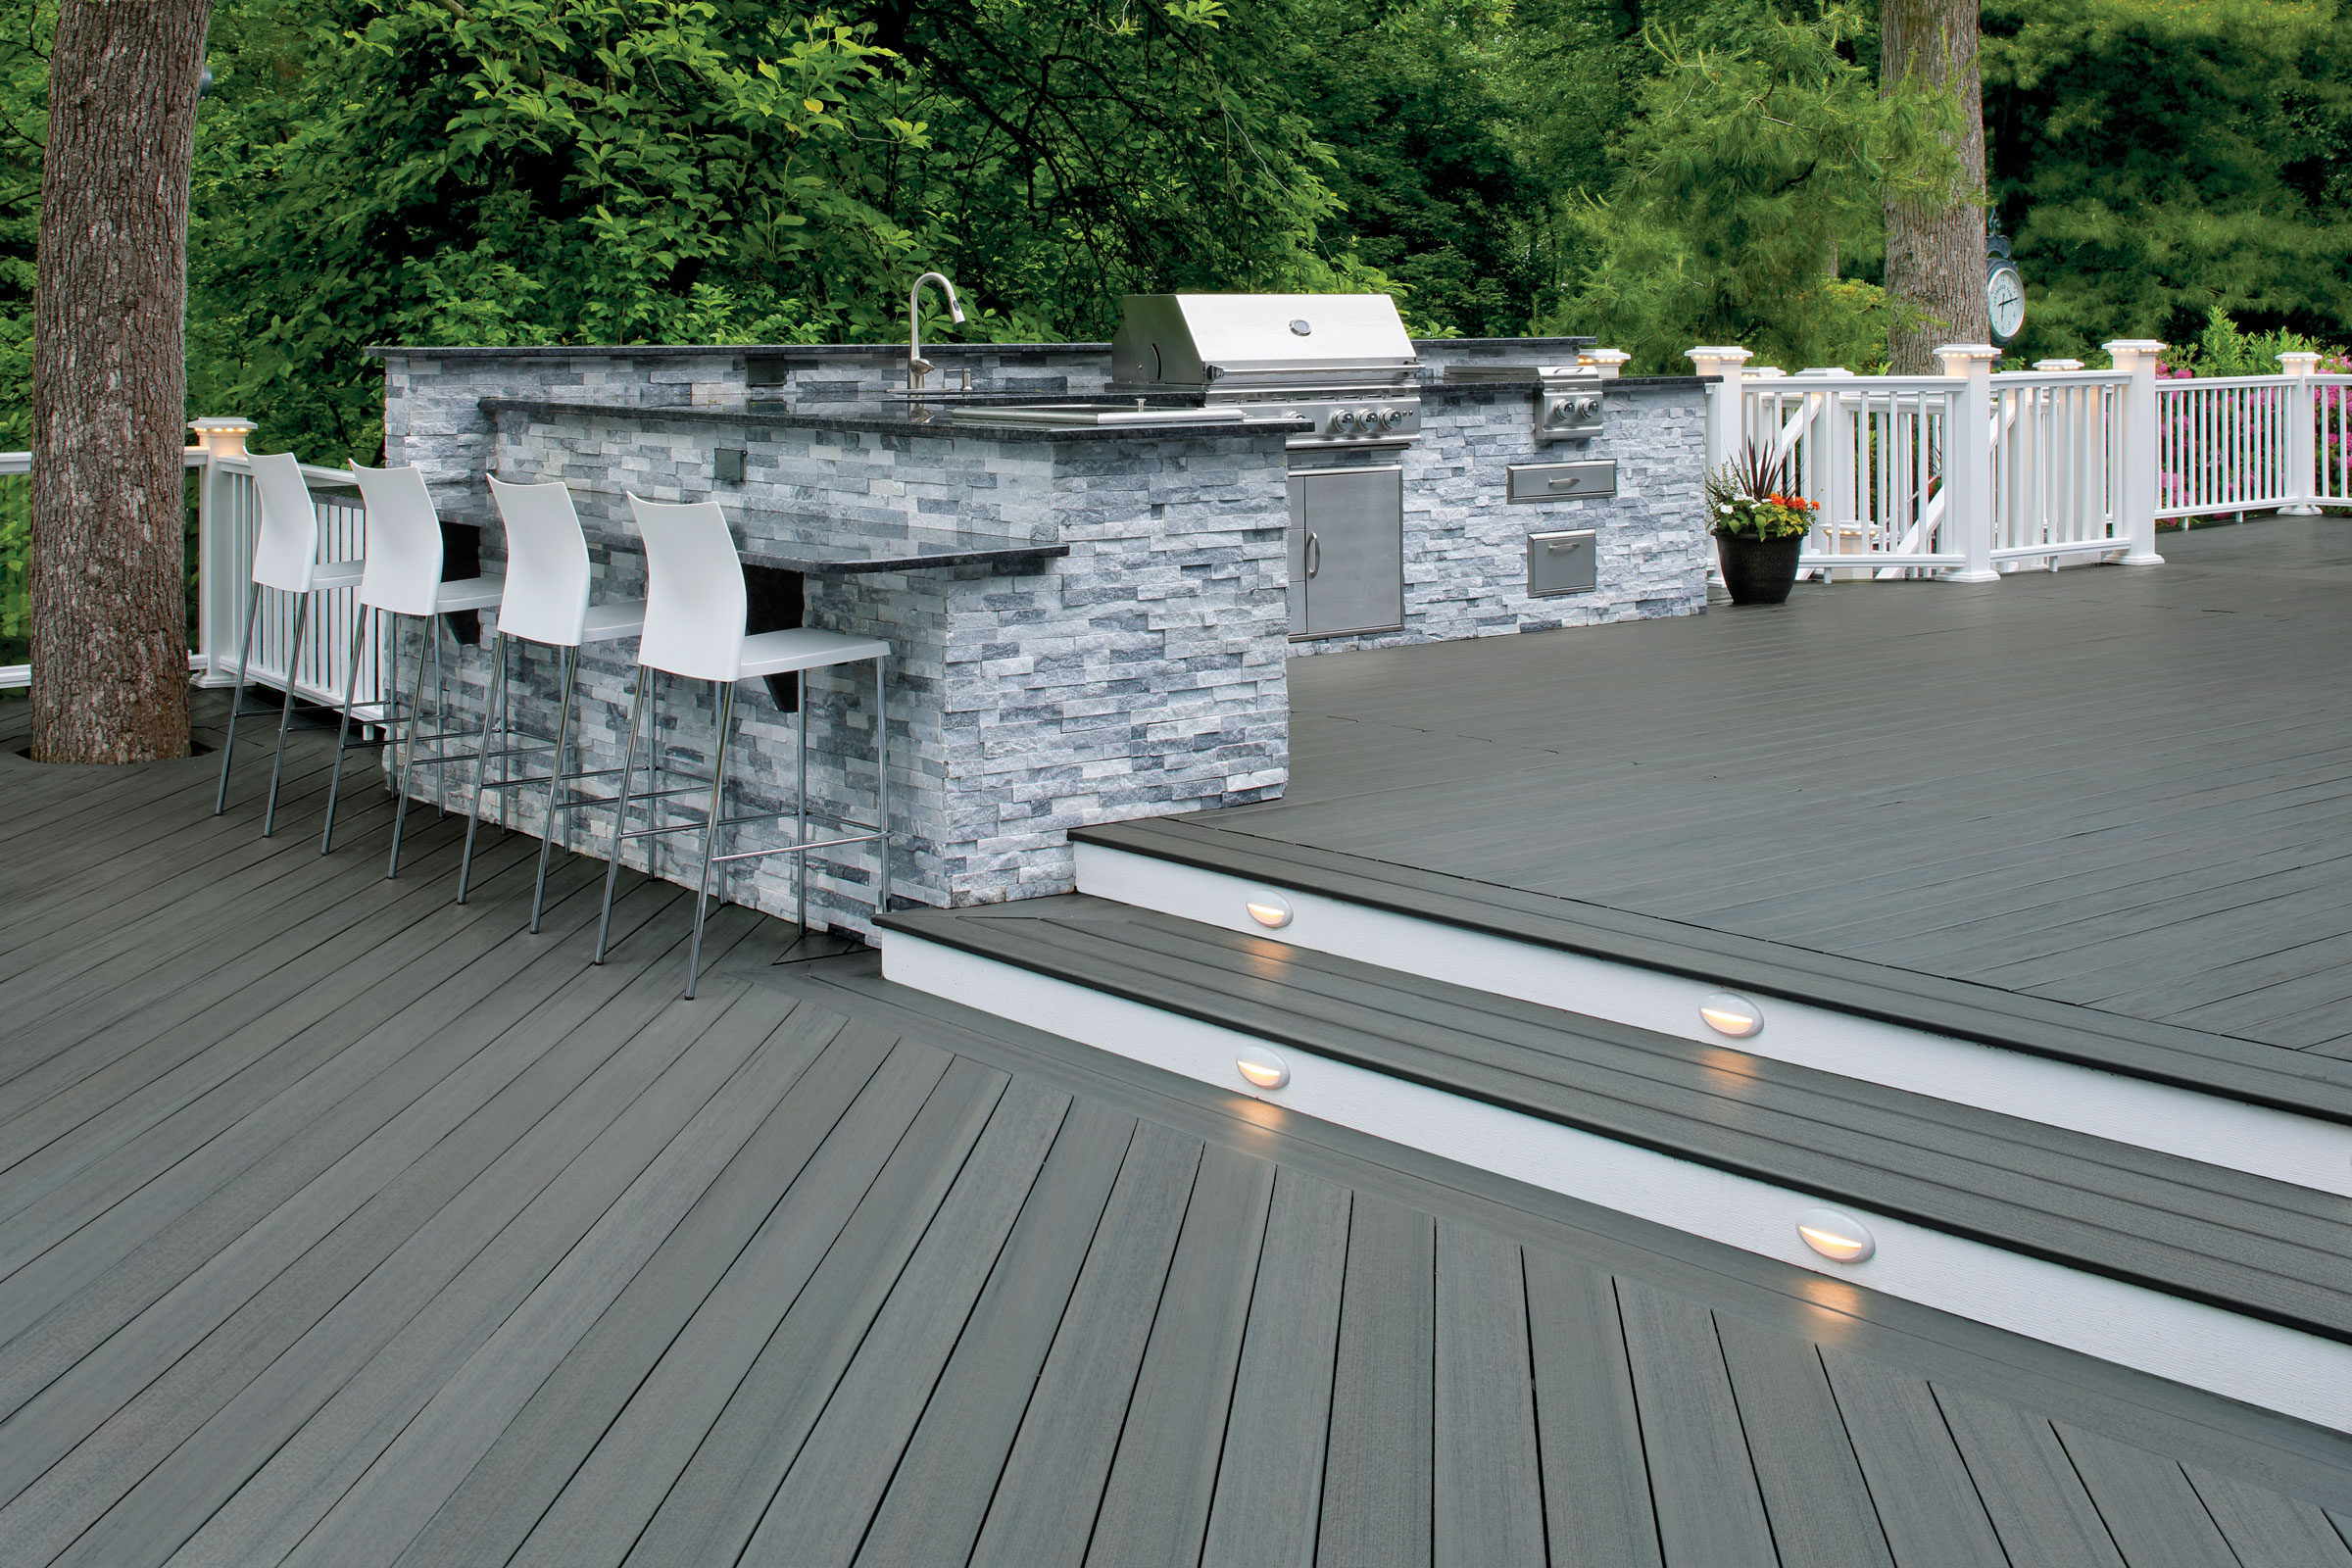 4 Simple Deck Ideas From Experts Across the Industry